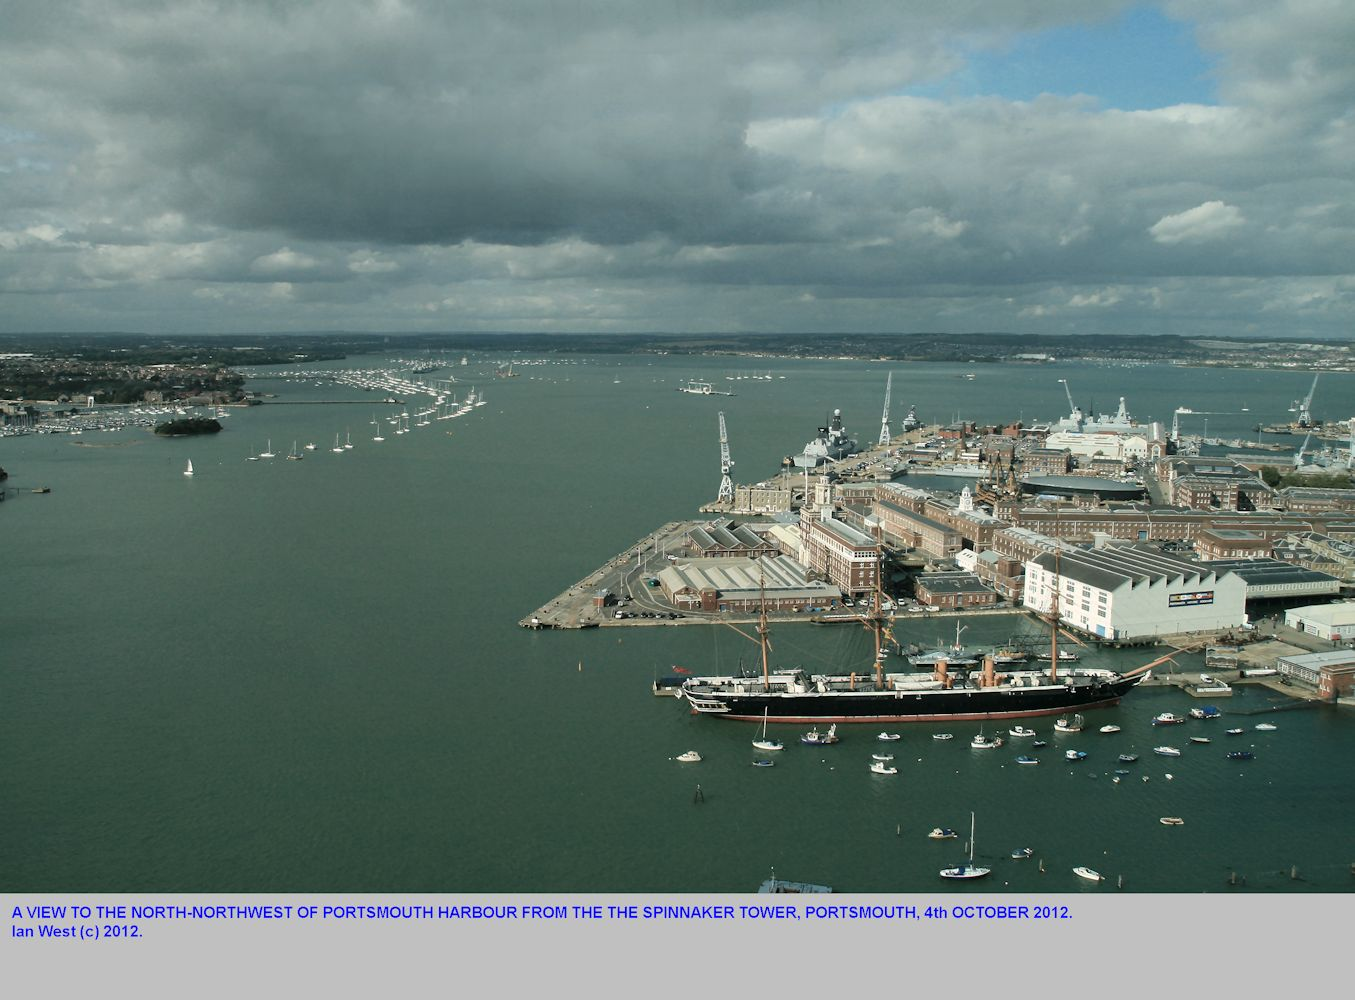 Portsmouth Harbour, looking NNW from the Spinnaker Tower, Portsmouth, Solent Estuaries, southern England